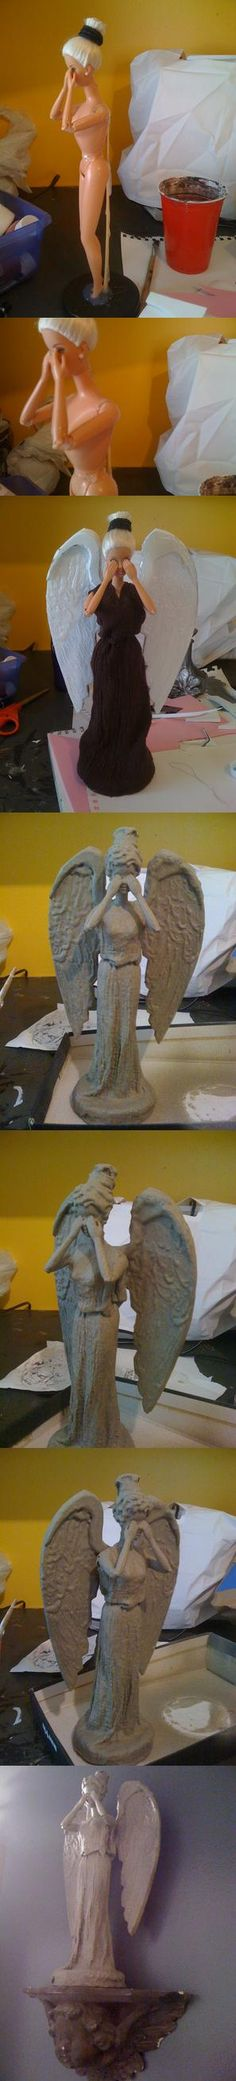 Dr. Who?   How to Make a Weeping Angel from a Barbie (link in comments) - Imgur